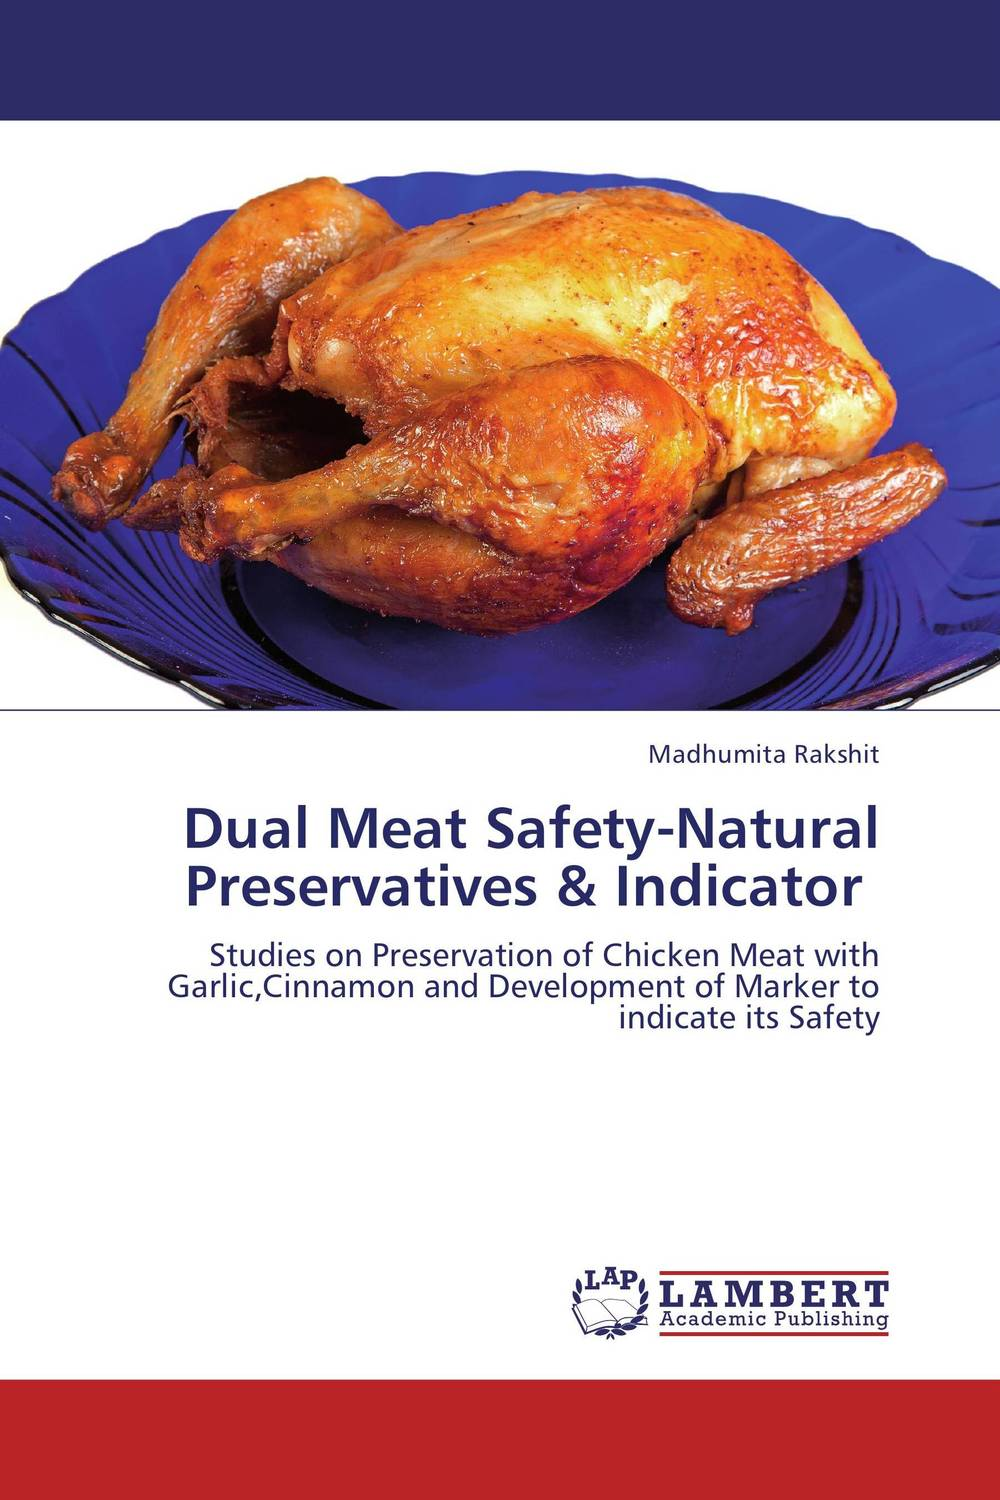 Dual Meat Safety-Natural Preservatives & Indicator meat tenderizer other